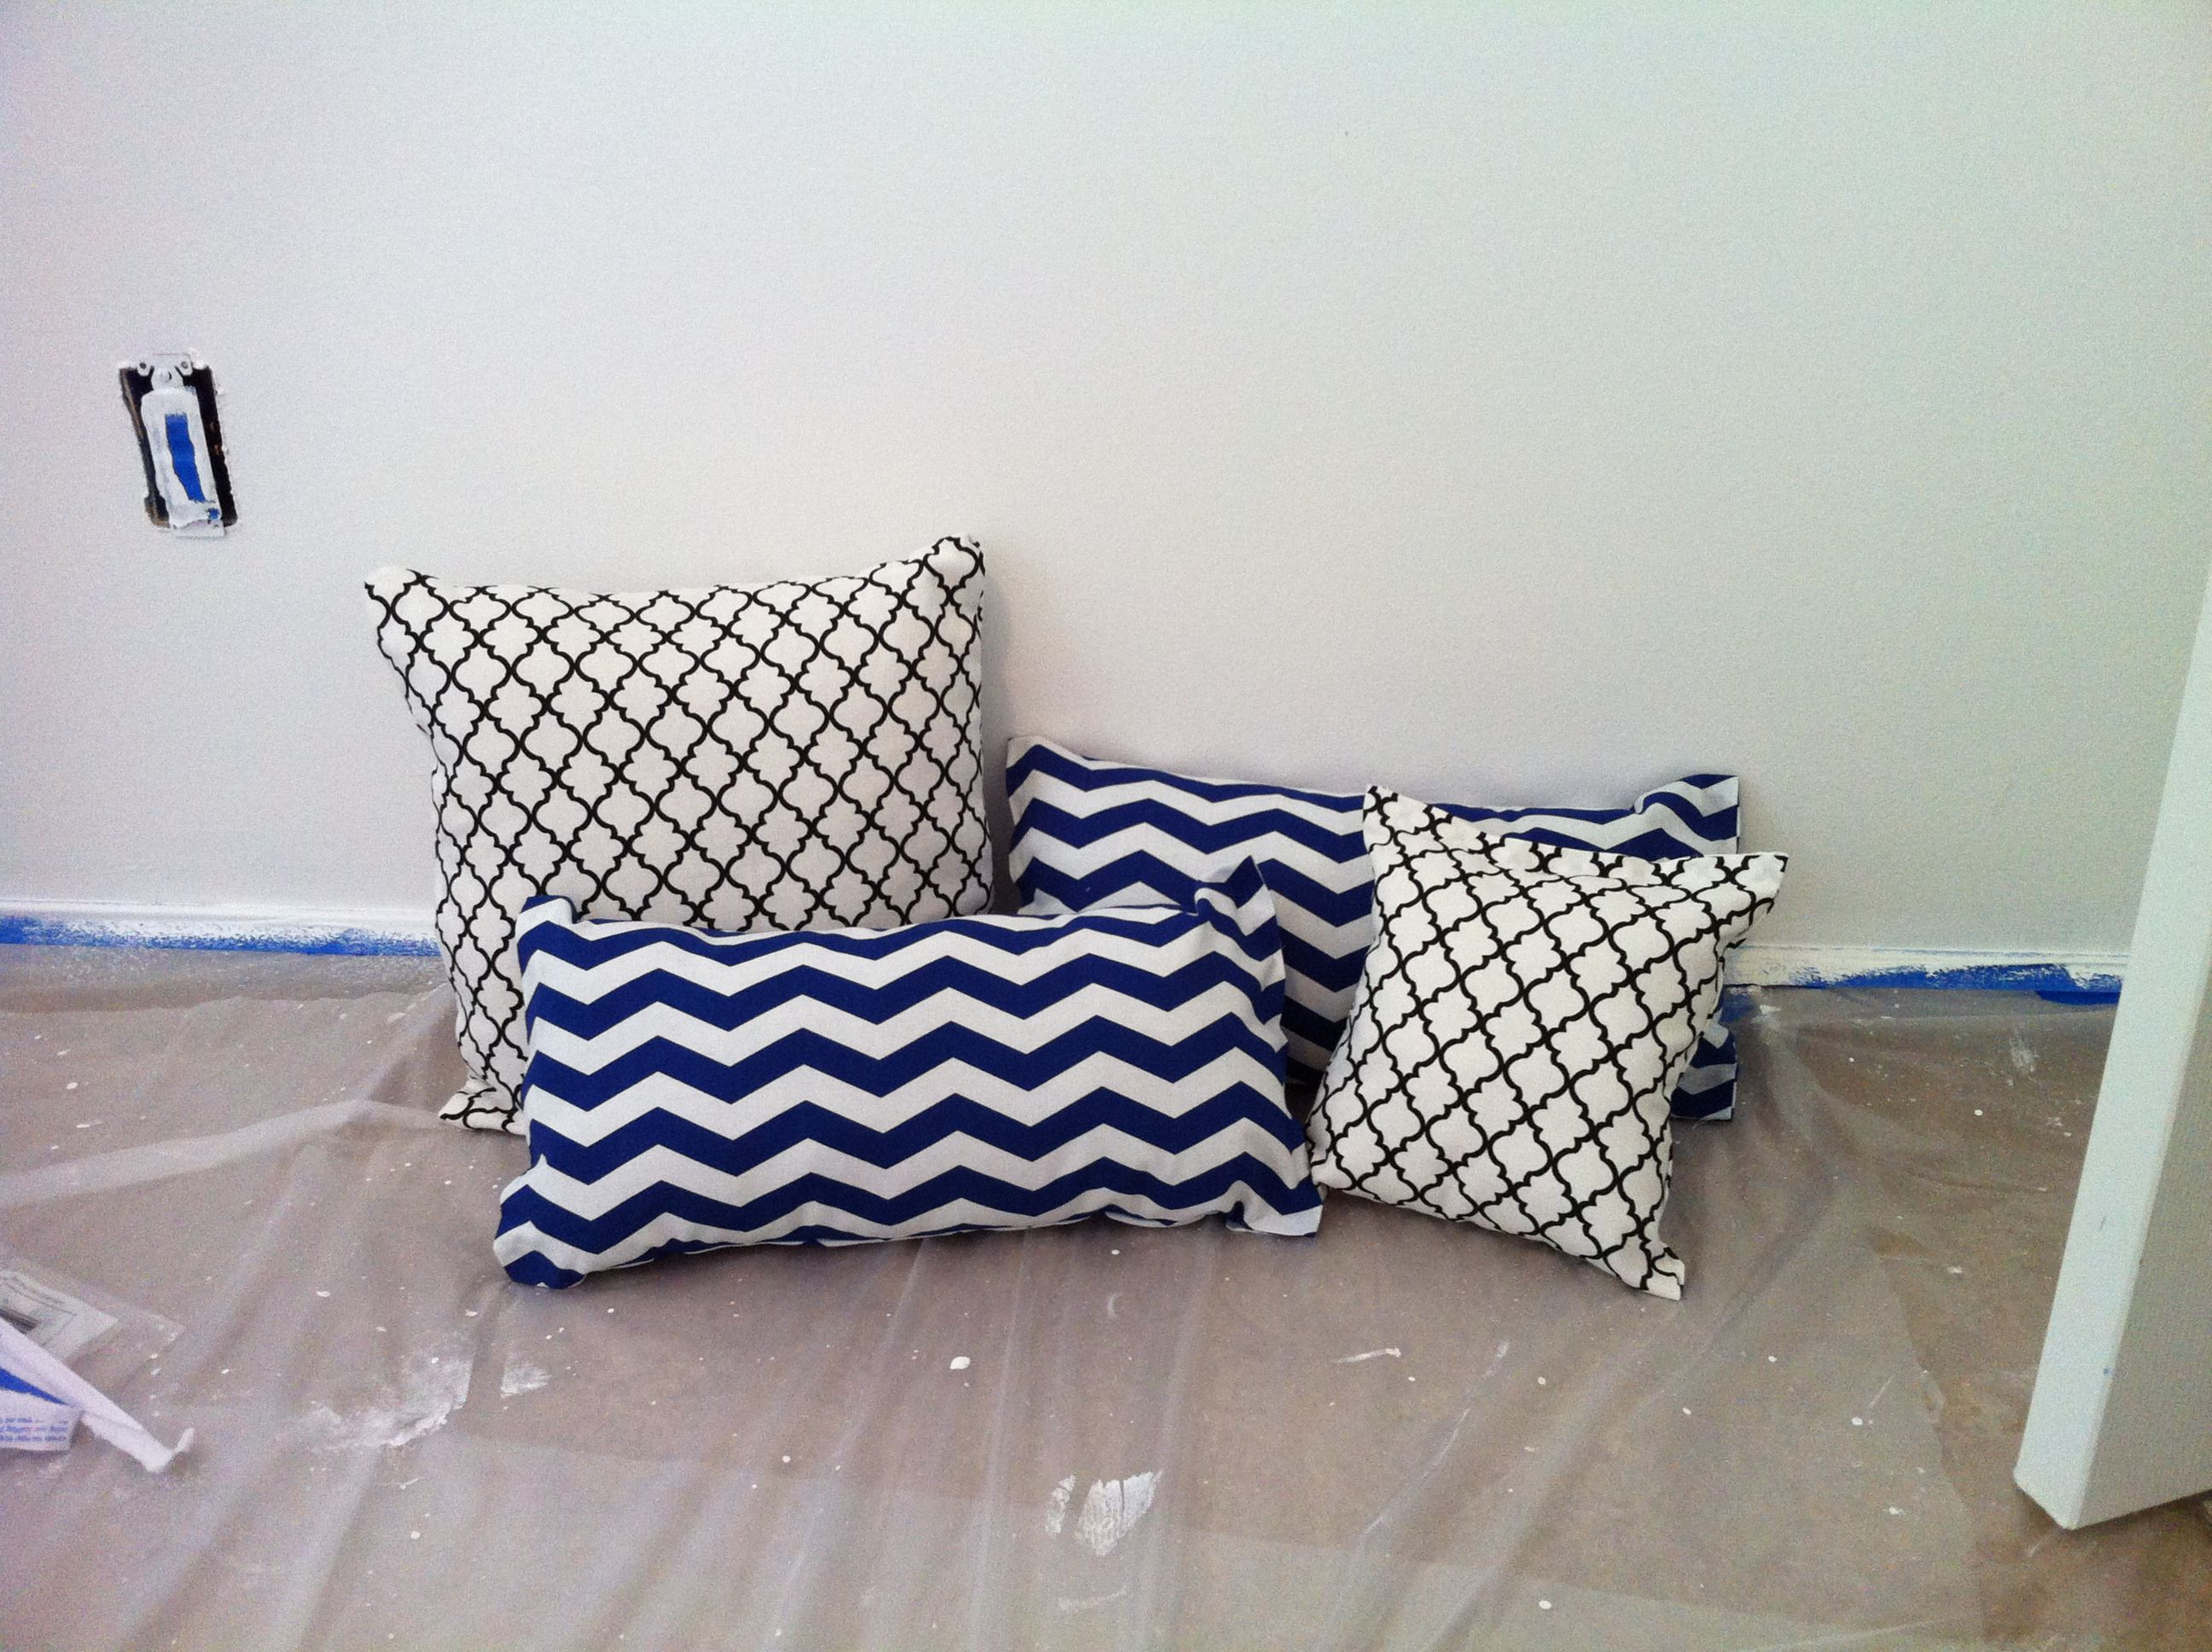 Diy Throw Pillow No Sew : No Sew Throw Pillows DIY Pinterest